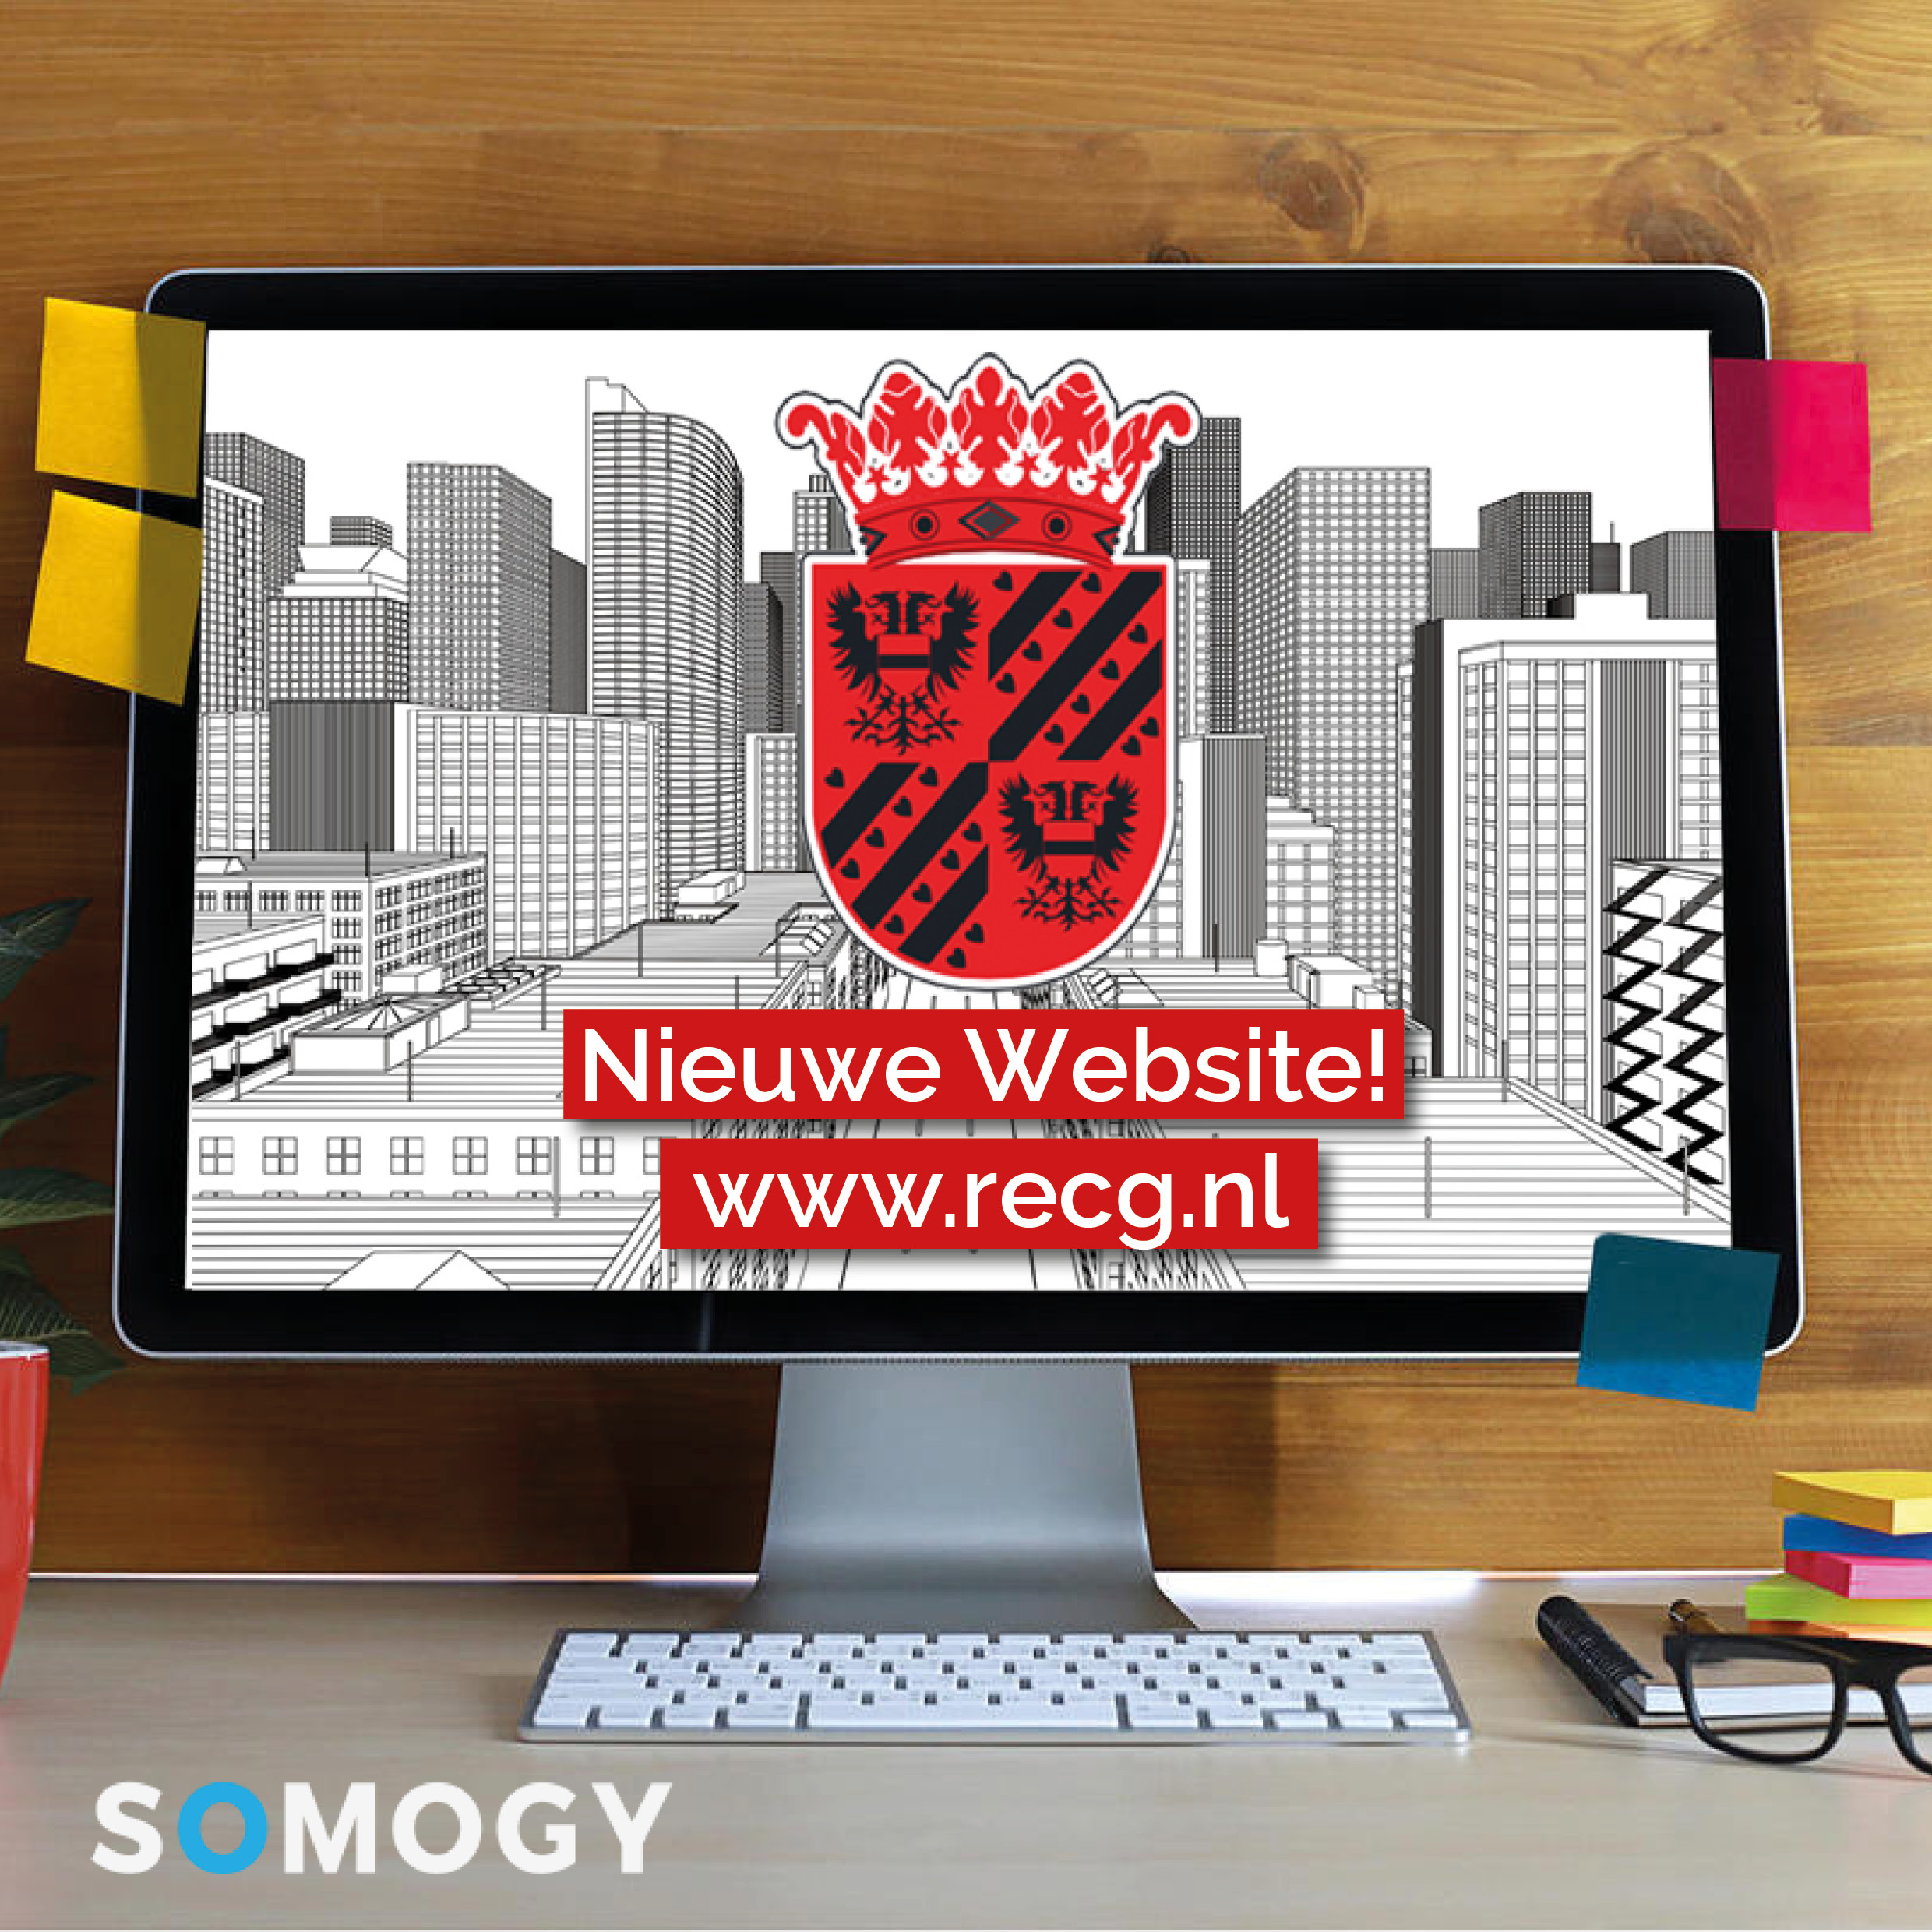 Websiterecgaankondiging